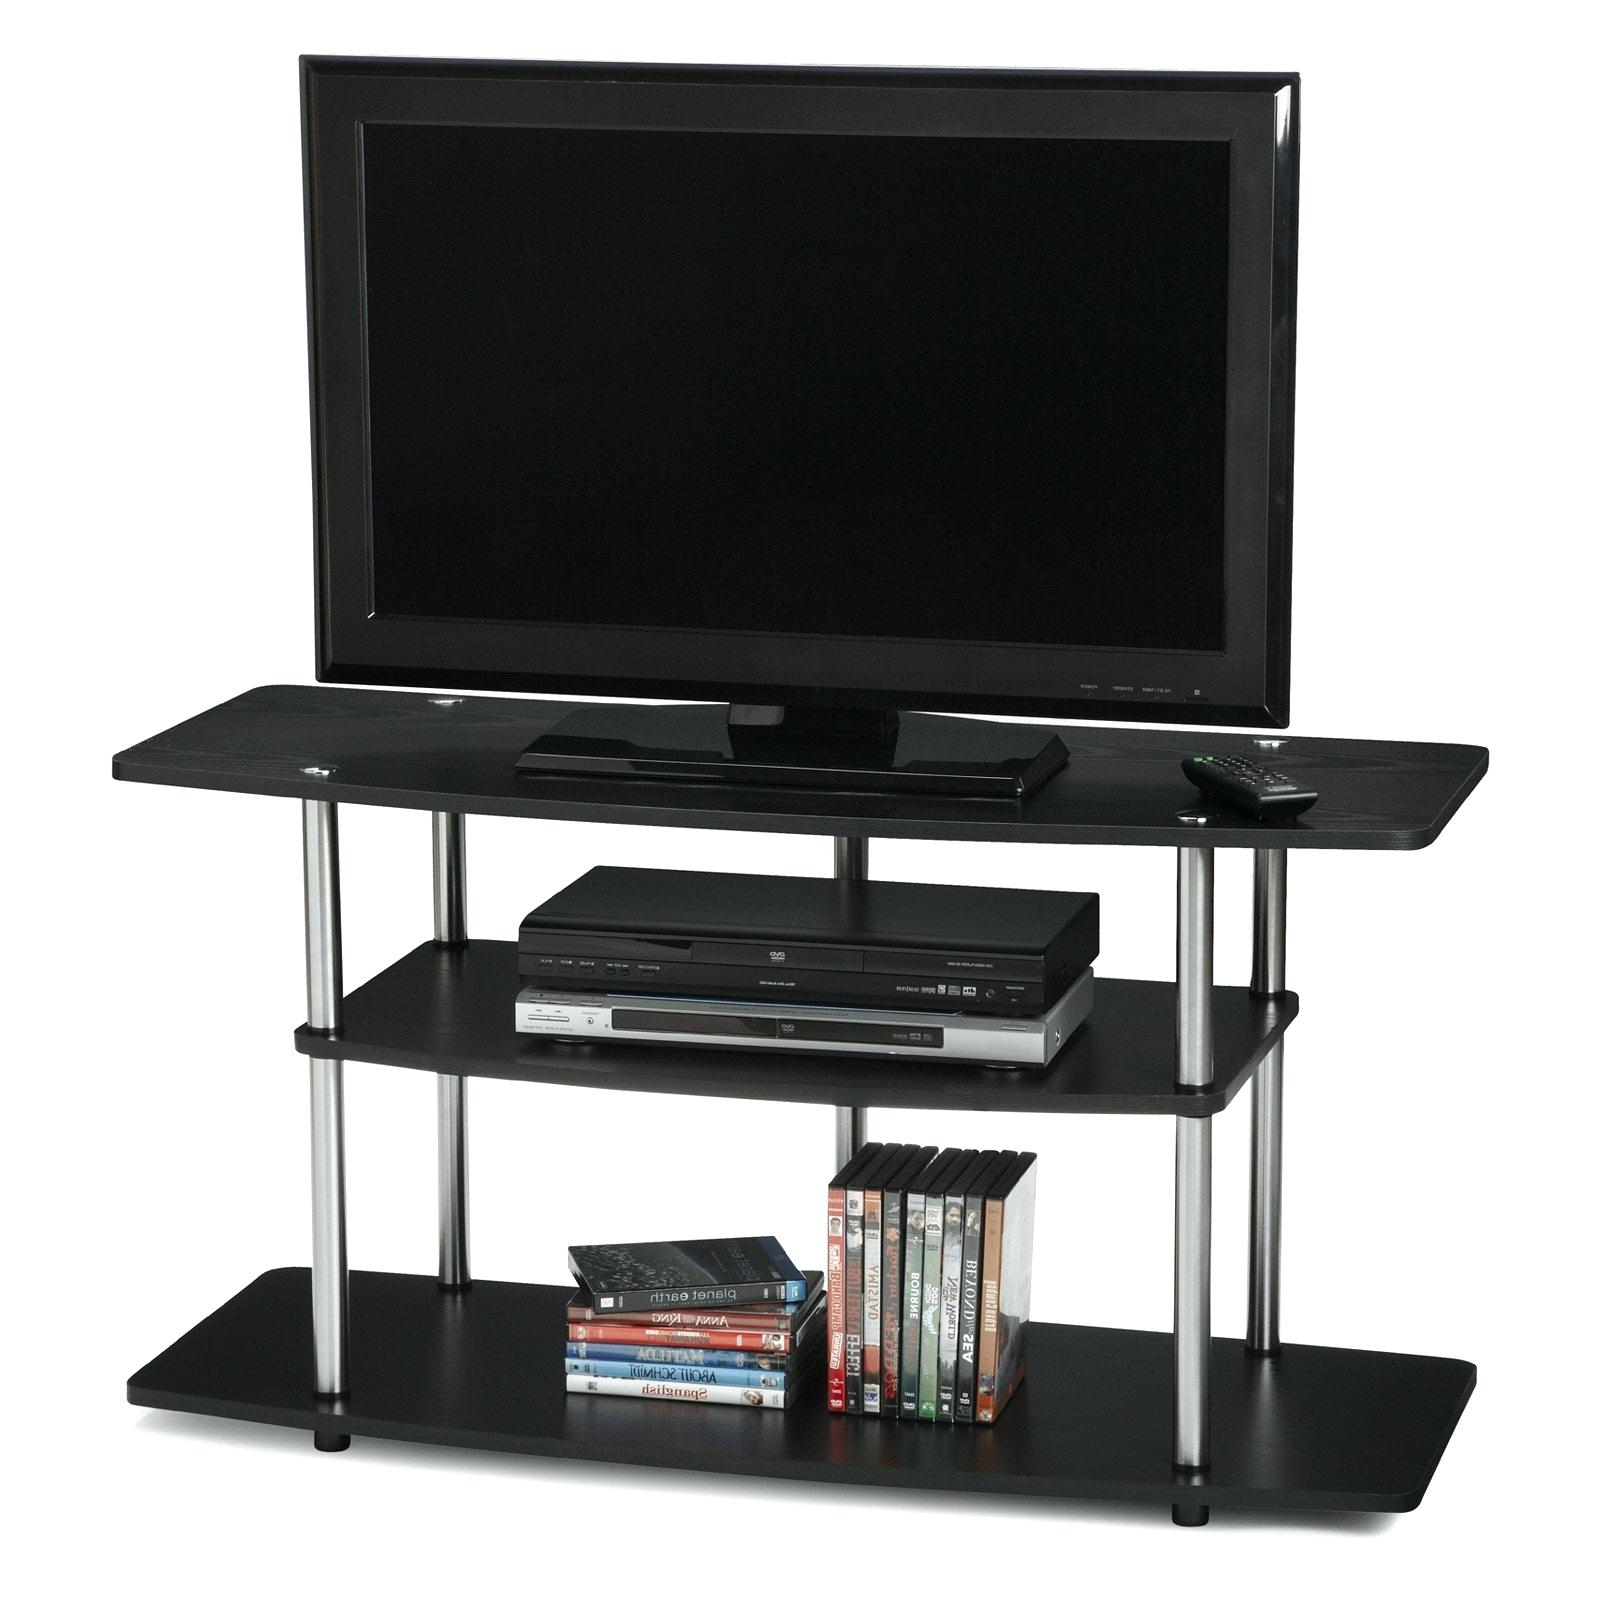 Most Up To Date Tall Skinny Tv Stand Thin Stands For Flat Screens Ultra Narrow Throughout Narrow Tv Stands For Flat Screens (View 10 of 20)